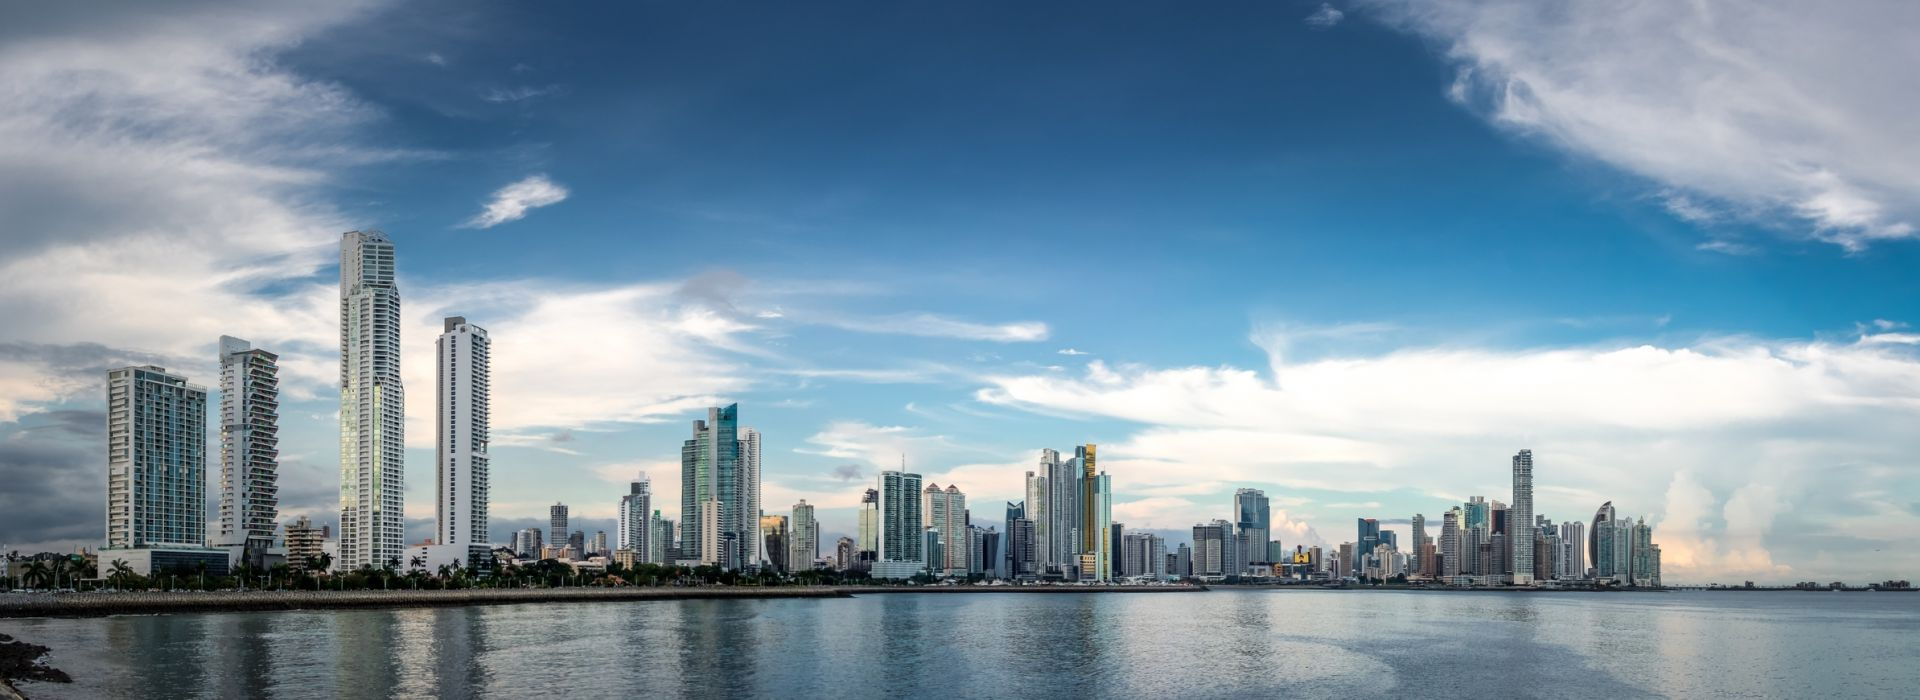 Adventure and sport activities Tours in Panama City